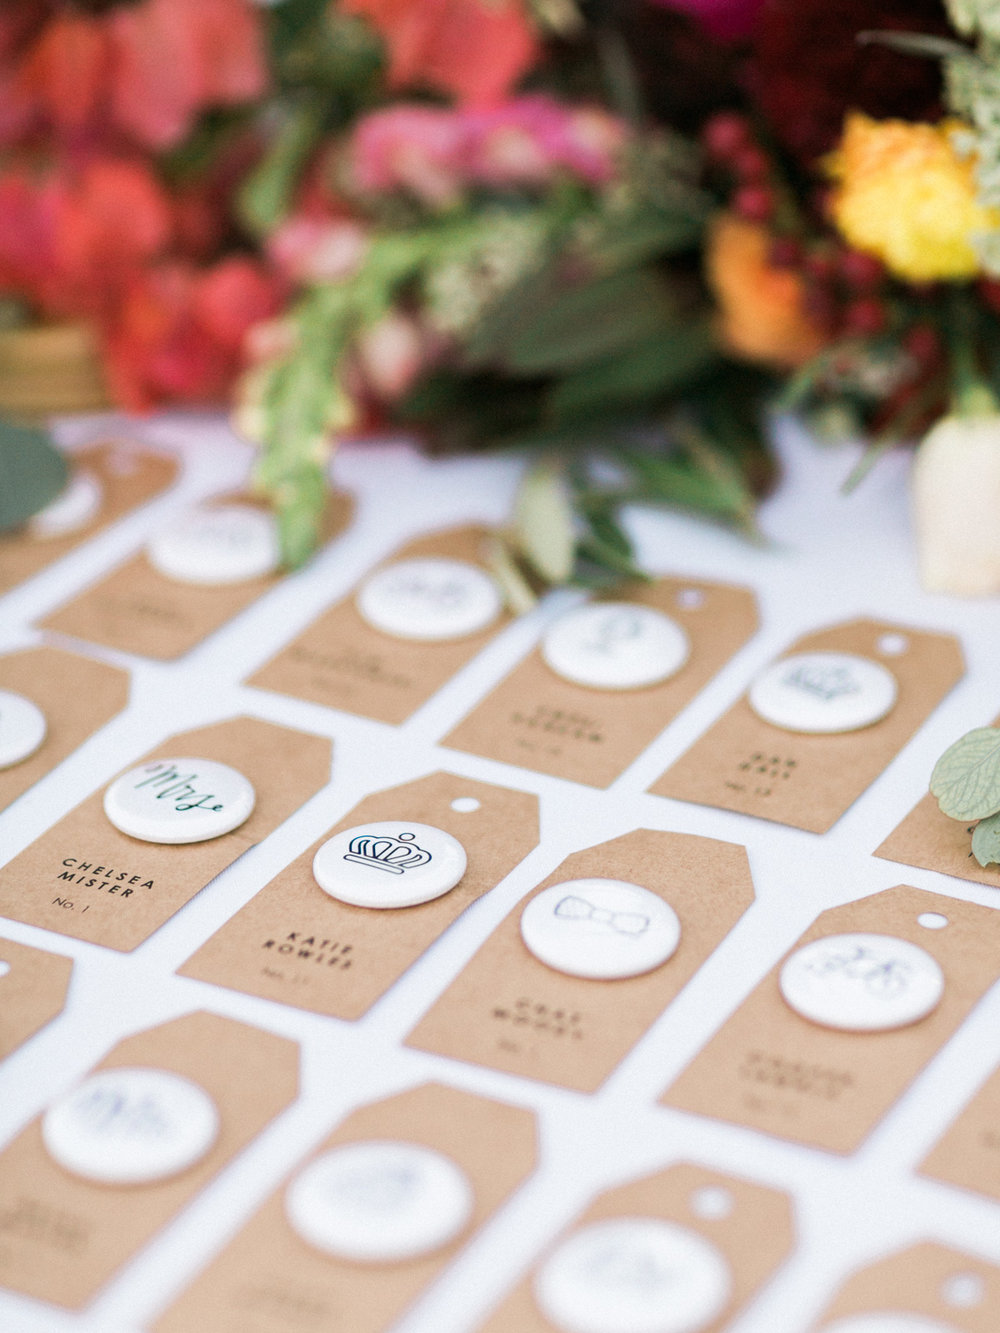 handmade button place card settings with florals